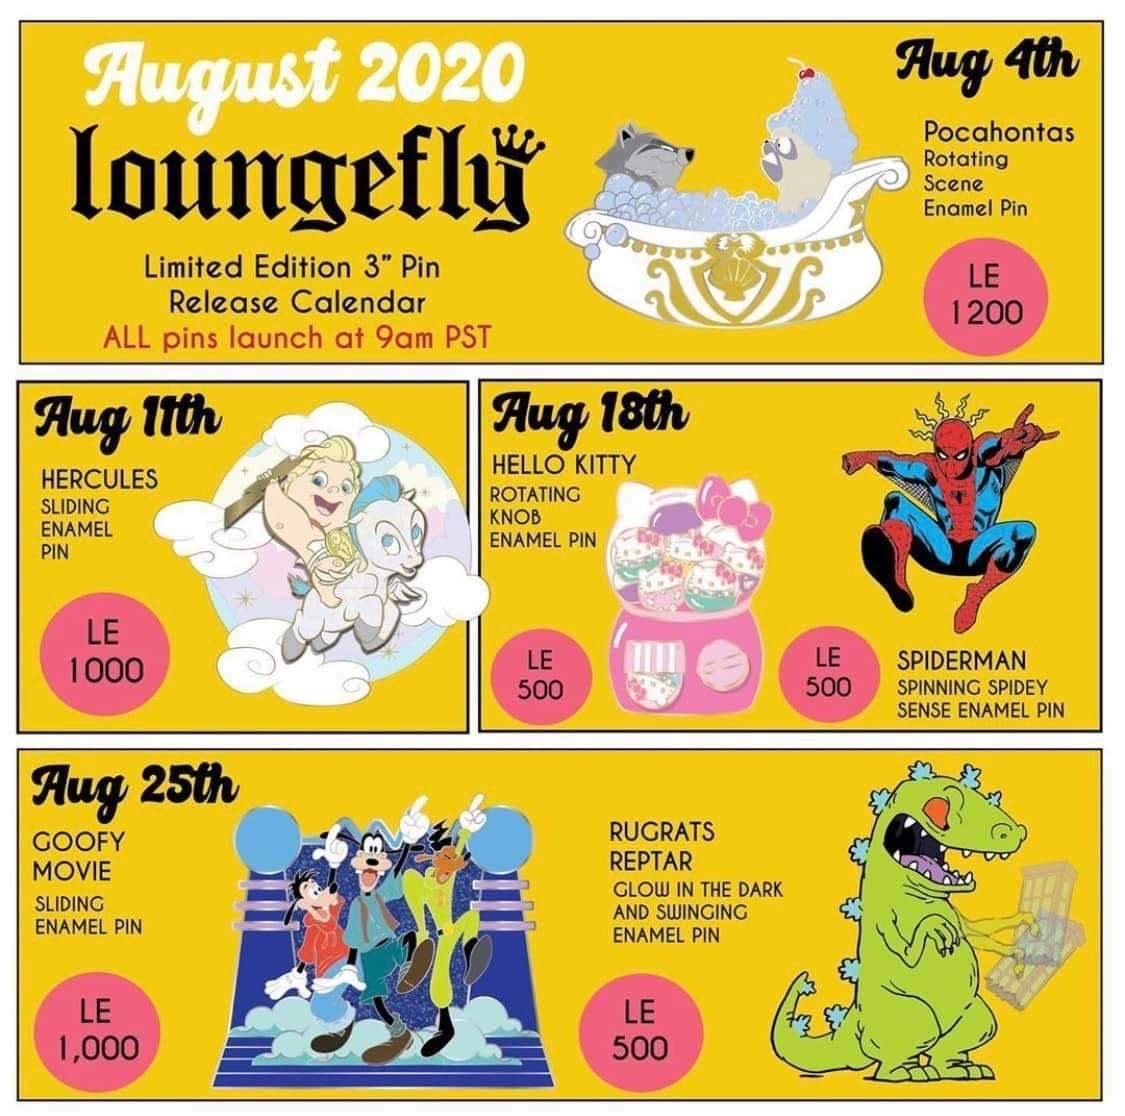 August 2020 Loungefly Disney Pin Preview